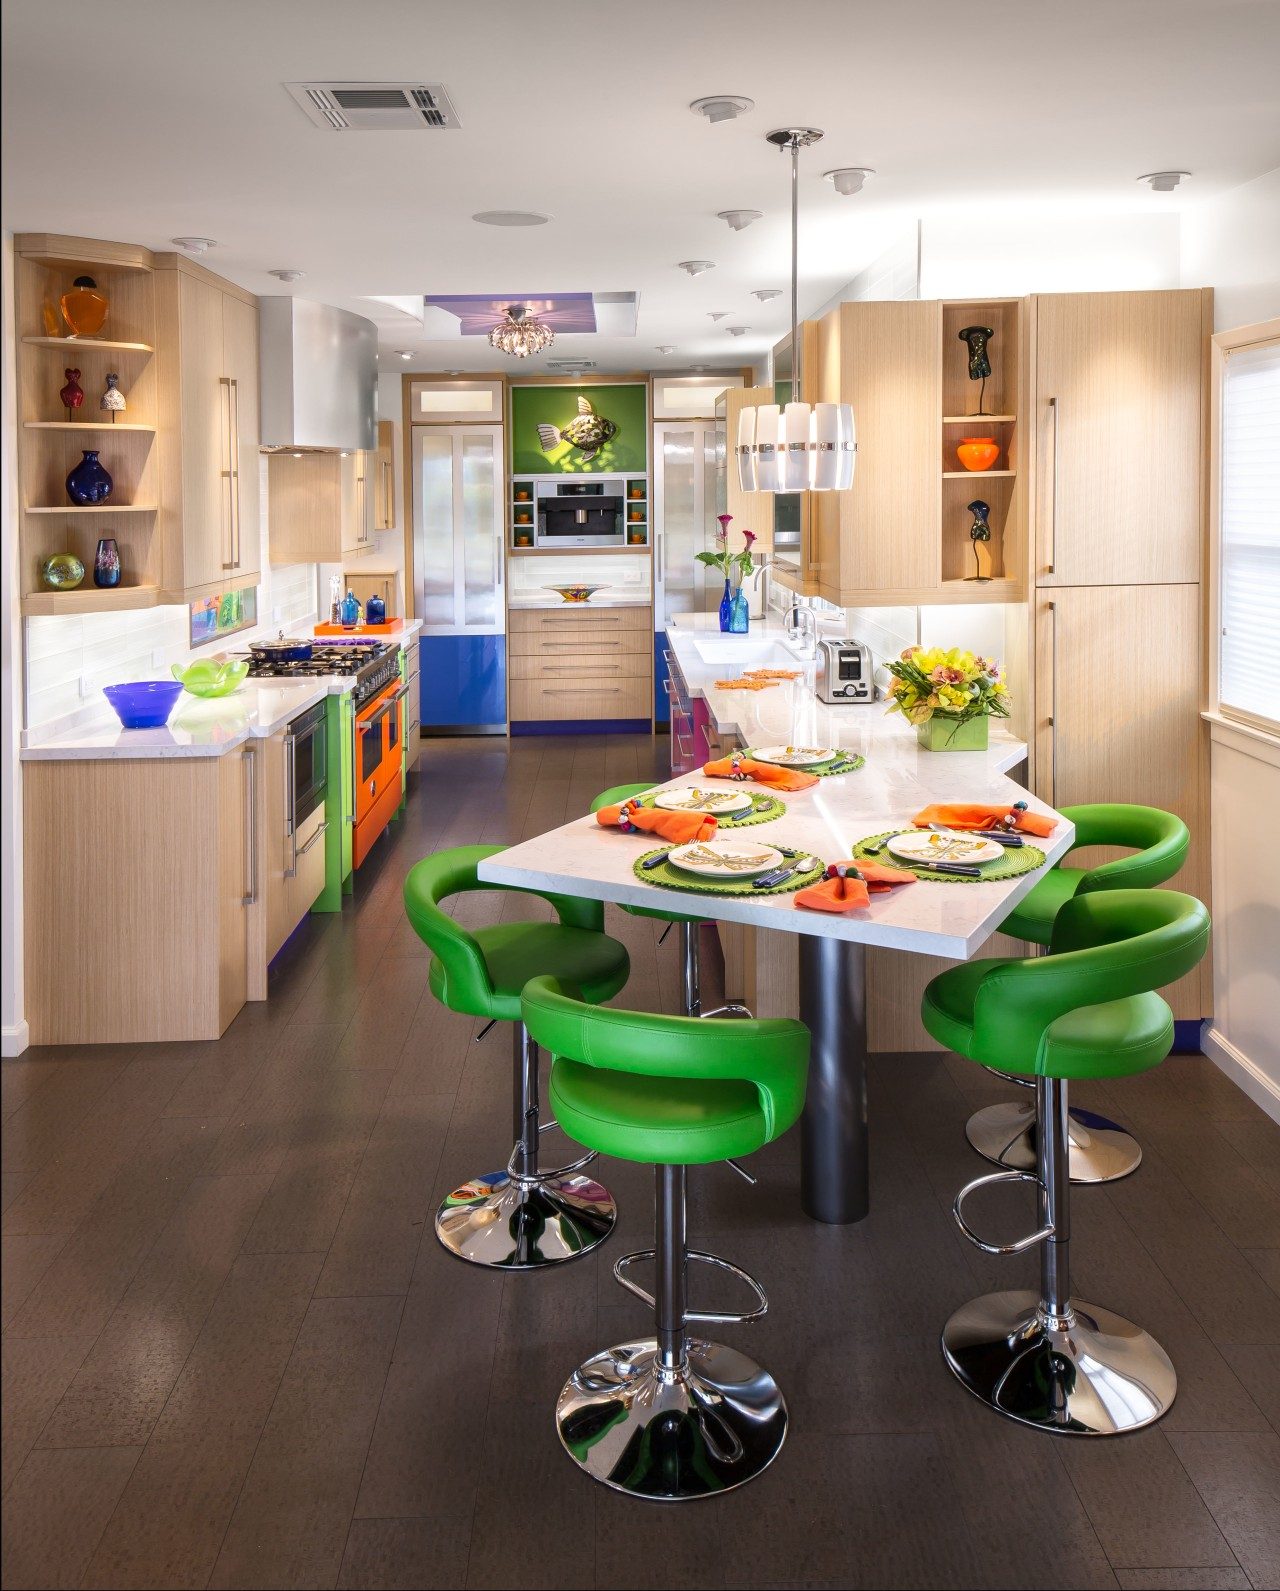 An angled breakfast table maximizes space in the countertop, interior design, kitchen, room, table, white